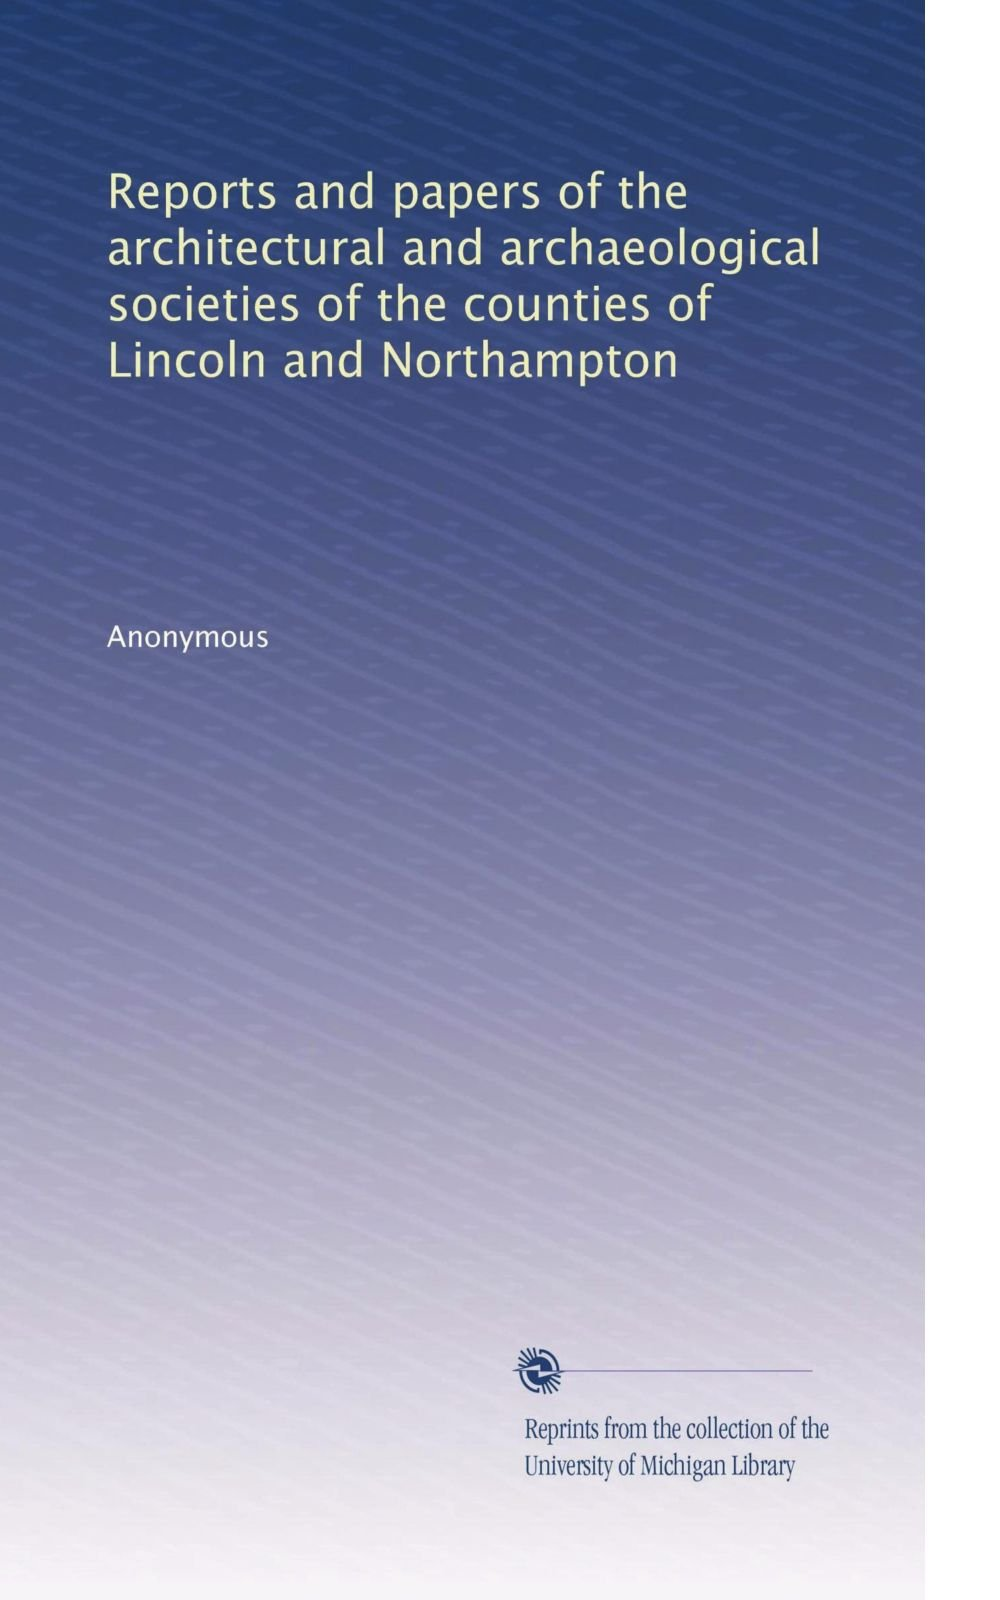 Reports and papers of the architectural and archaeological societies of the counties of Lincoln and Northampton ebook